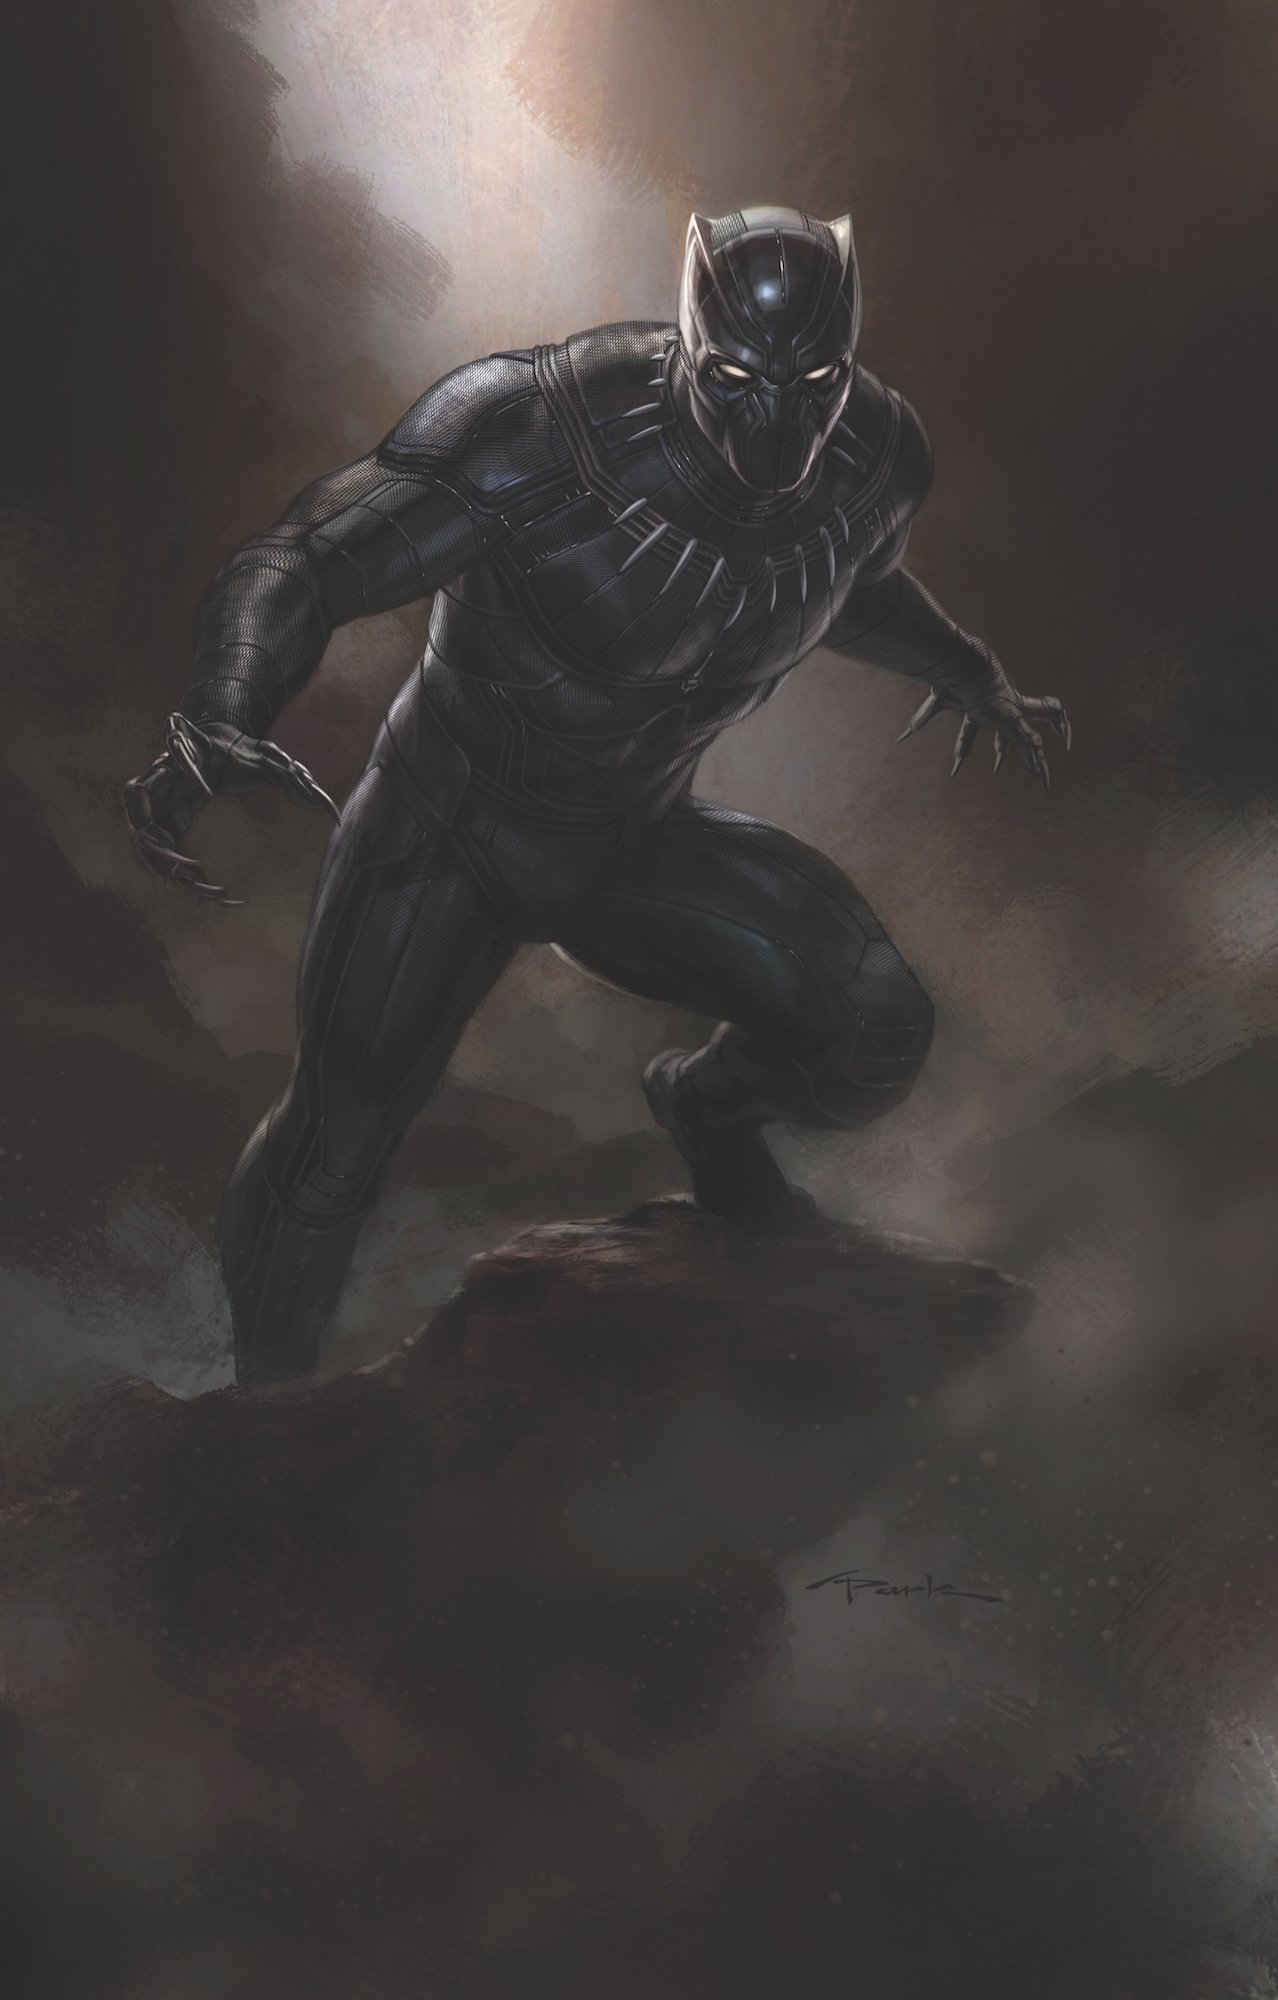 Concept art de Captain America: Civil War avec Black Panther